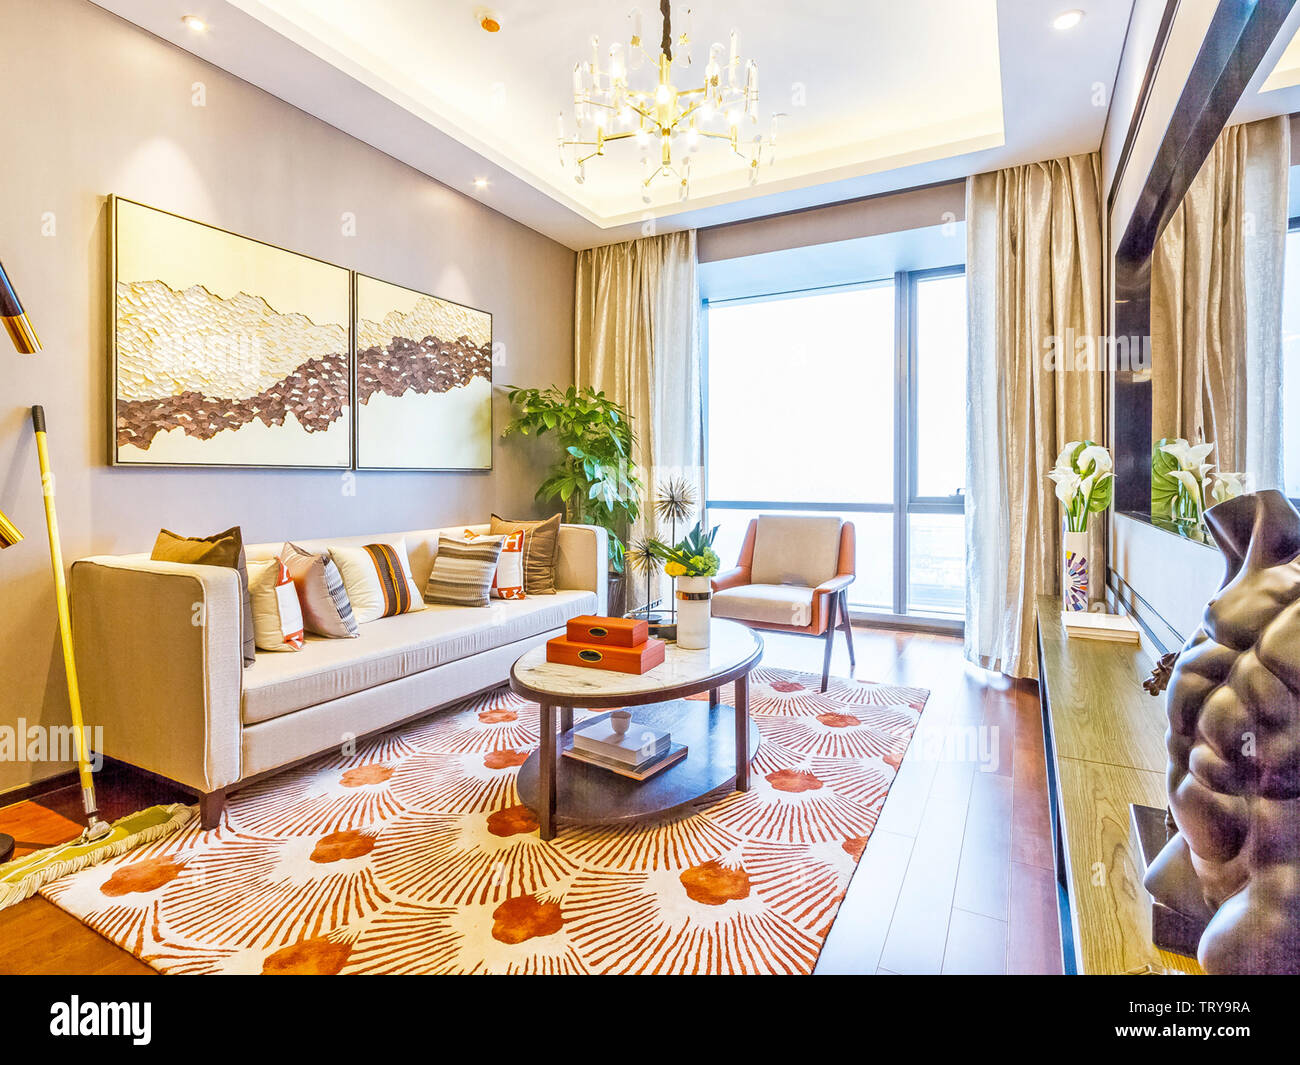 Living Room Hall Decoration Luxury Interior Design Decoration Glazing Lighting Background Television Wall Background Wall Sofa Interior Decoration Home Design Home Home Sitting Room Visitors Stock Photo Alamy